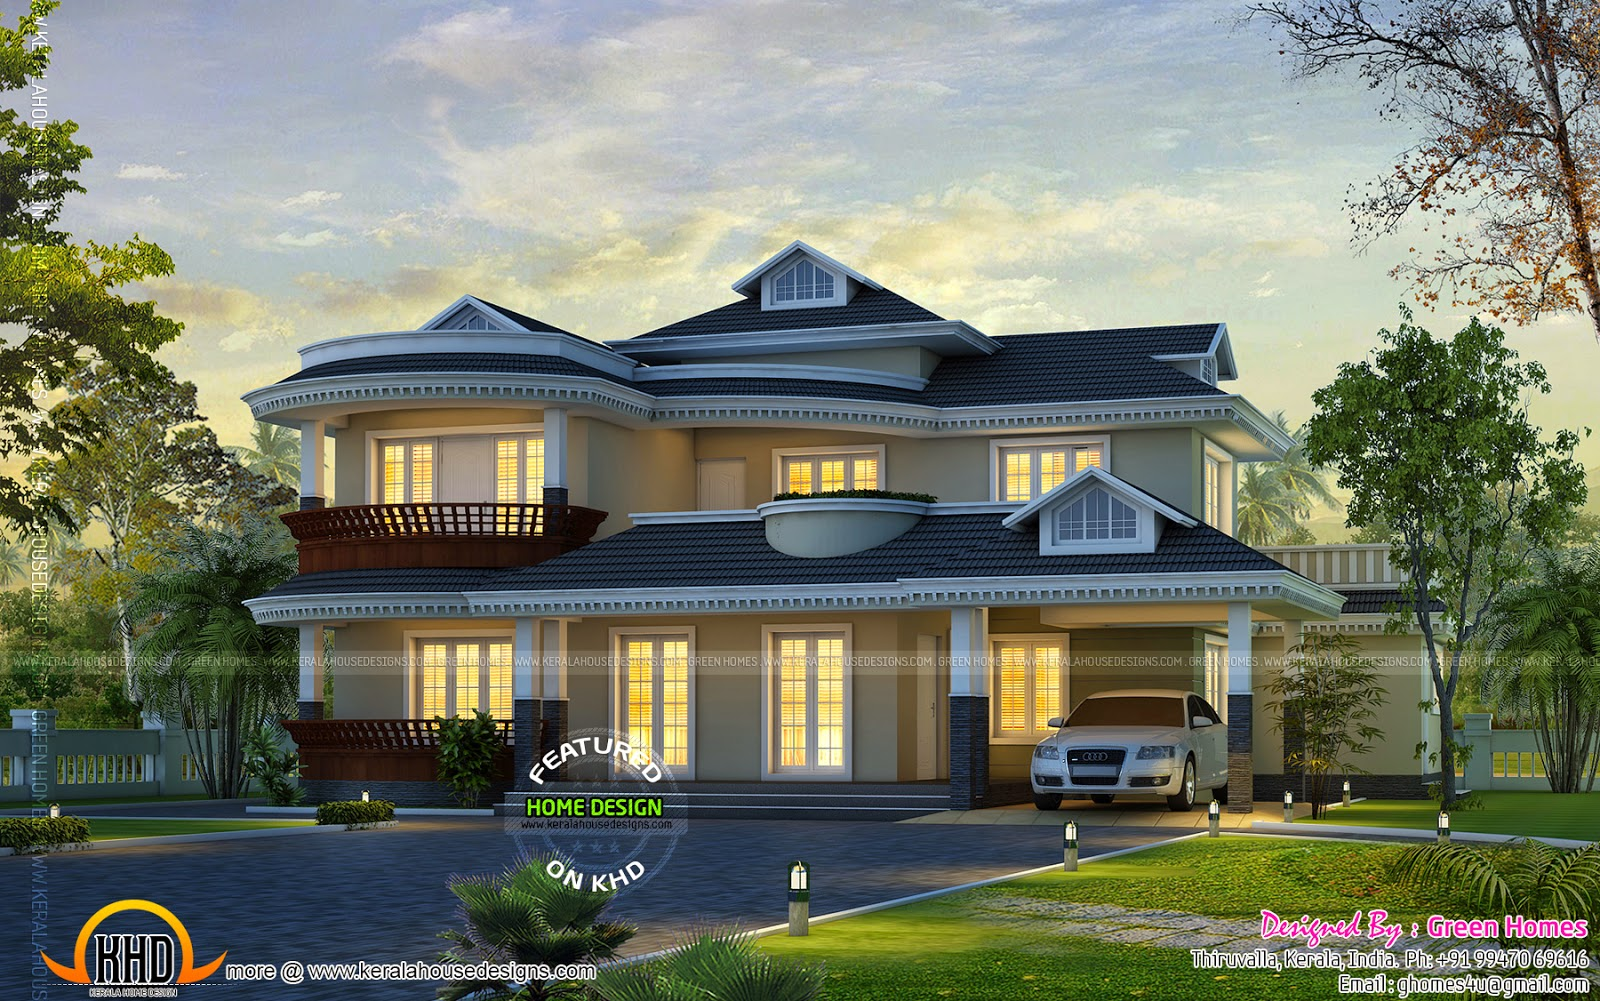 Dream home design - Kerala home design and floor plans